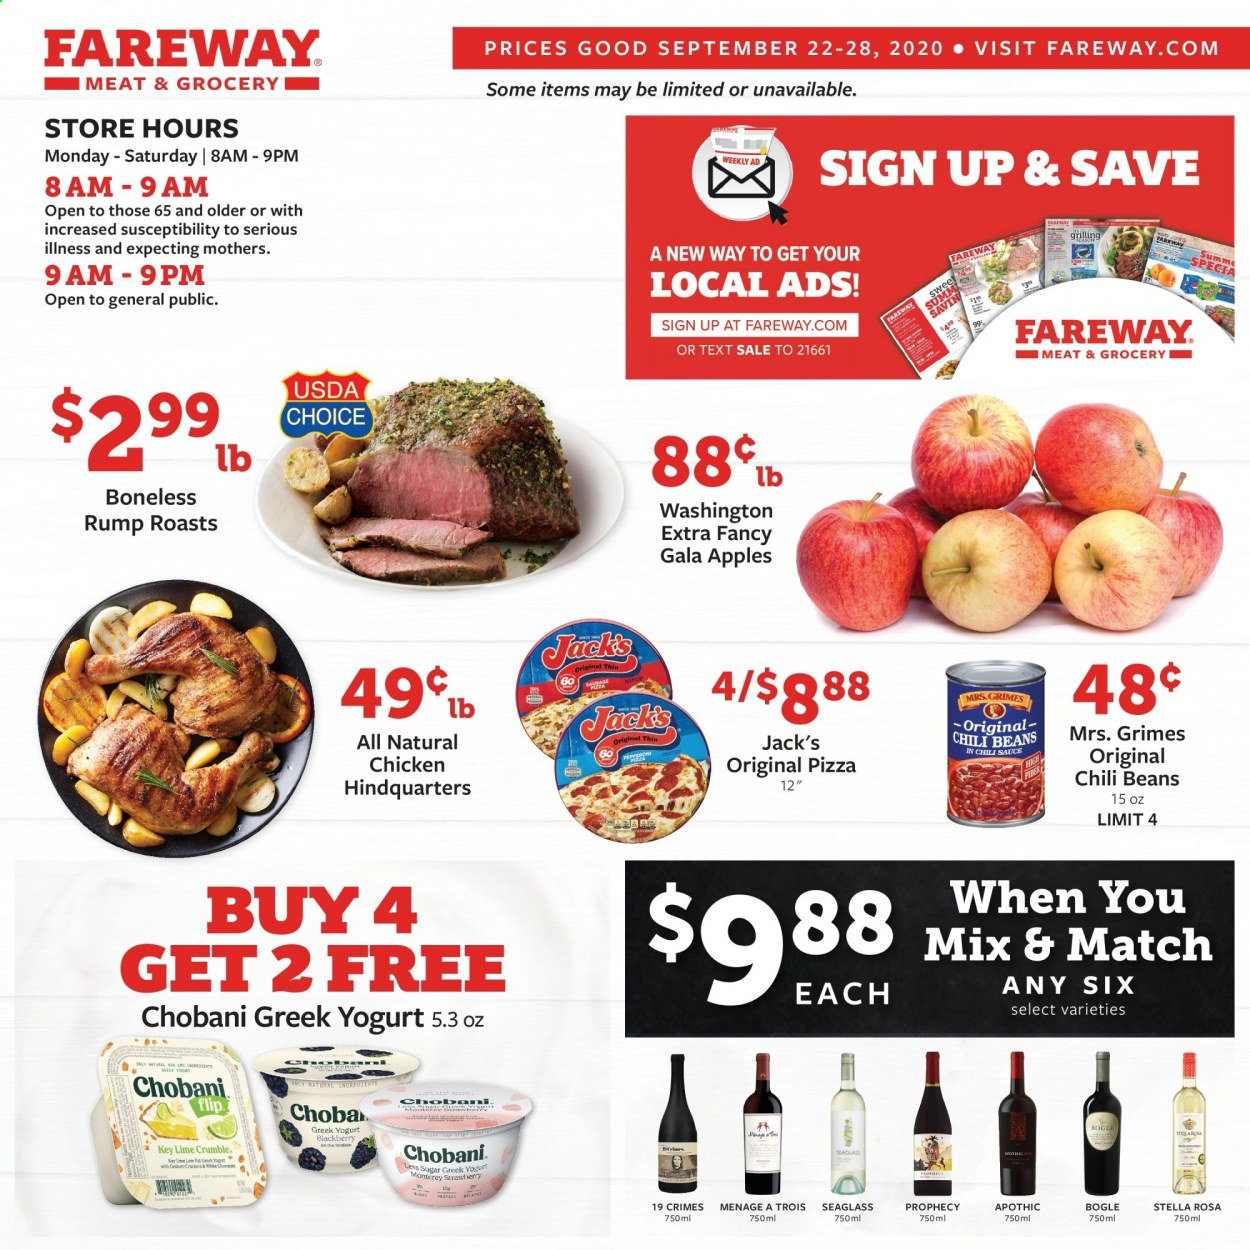 Fareway Flyer - 09.22.2020 - 09.28.2020 - Sales products - gala apples, strawberries, pizza, sausage, greek yogurt, sauce, beans, chili beans, chili sauce, chicken. Page 1.